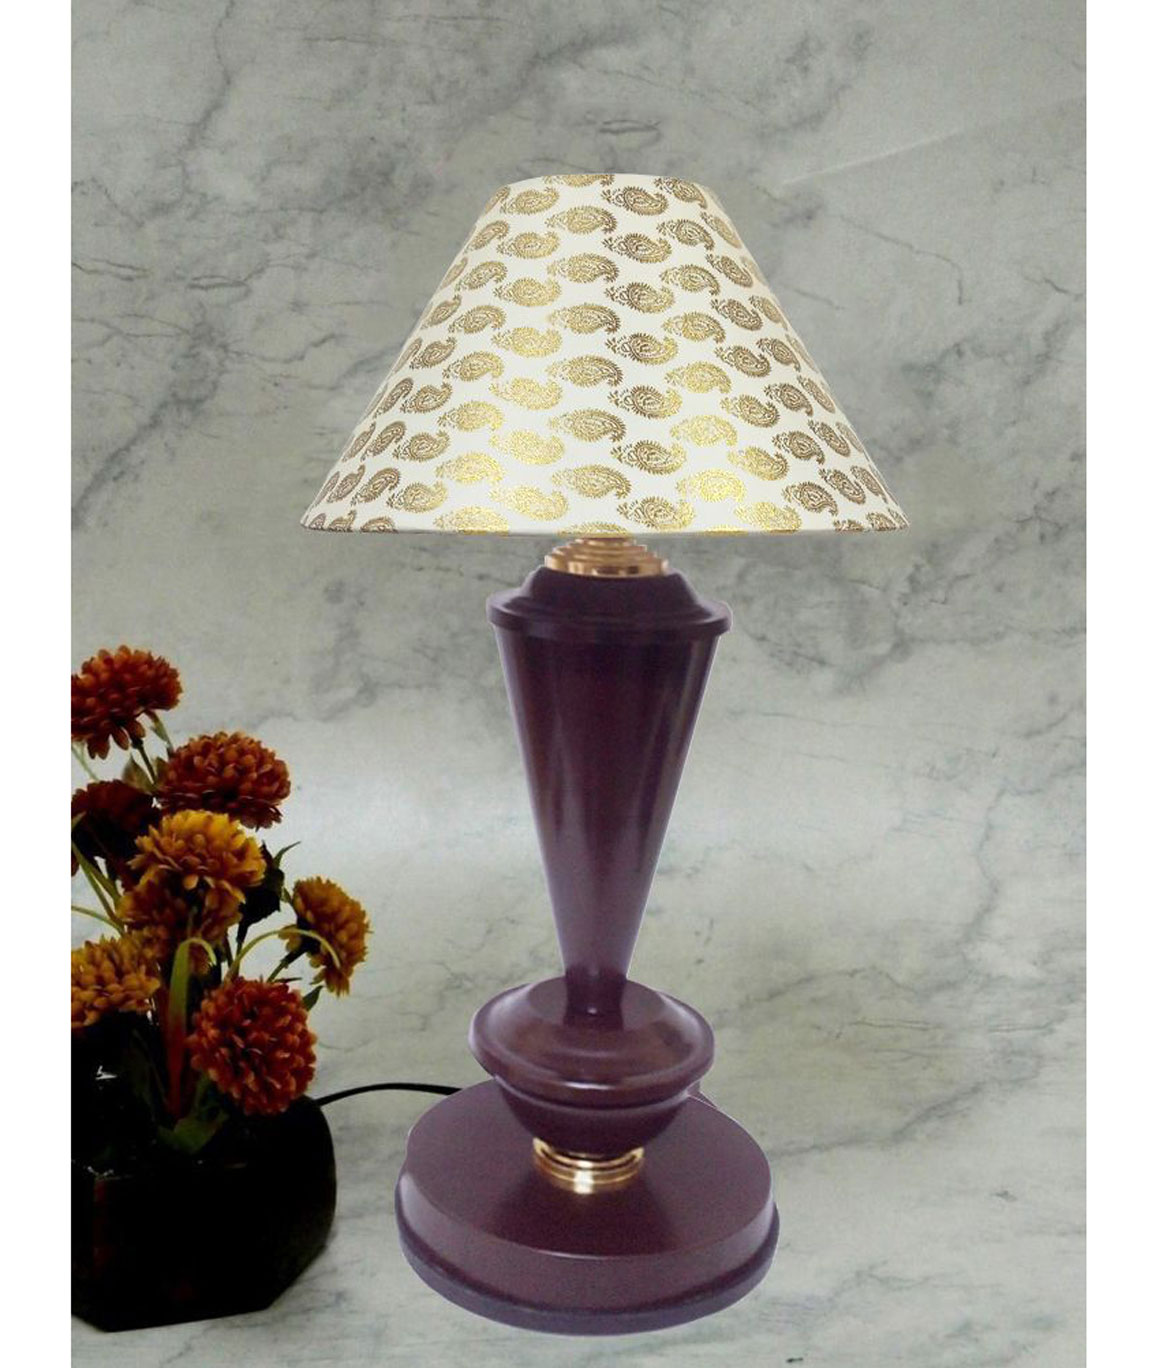 RDC Brown with Golden Base Table Lamp with 10 Inches Round Cream Golden Designer Lamp Shade